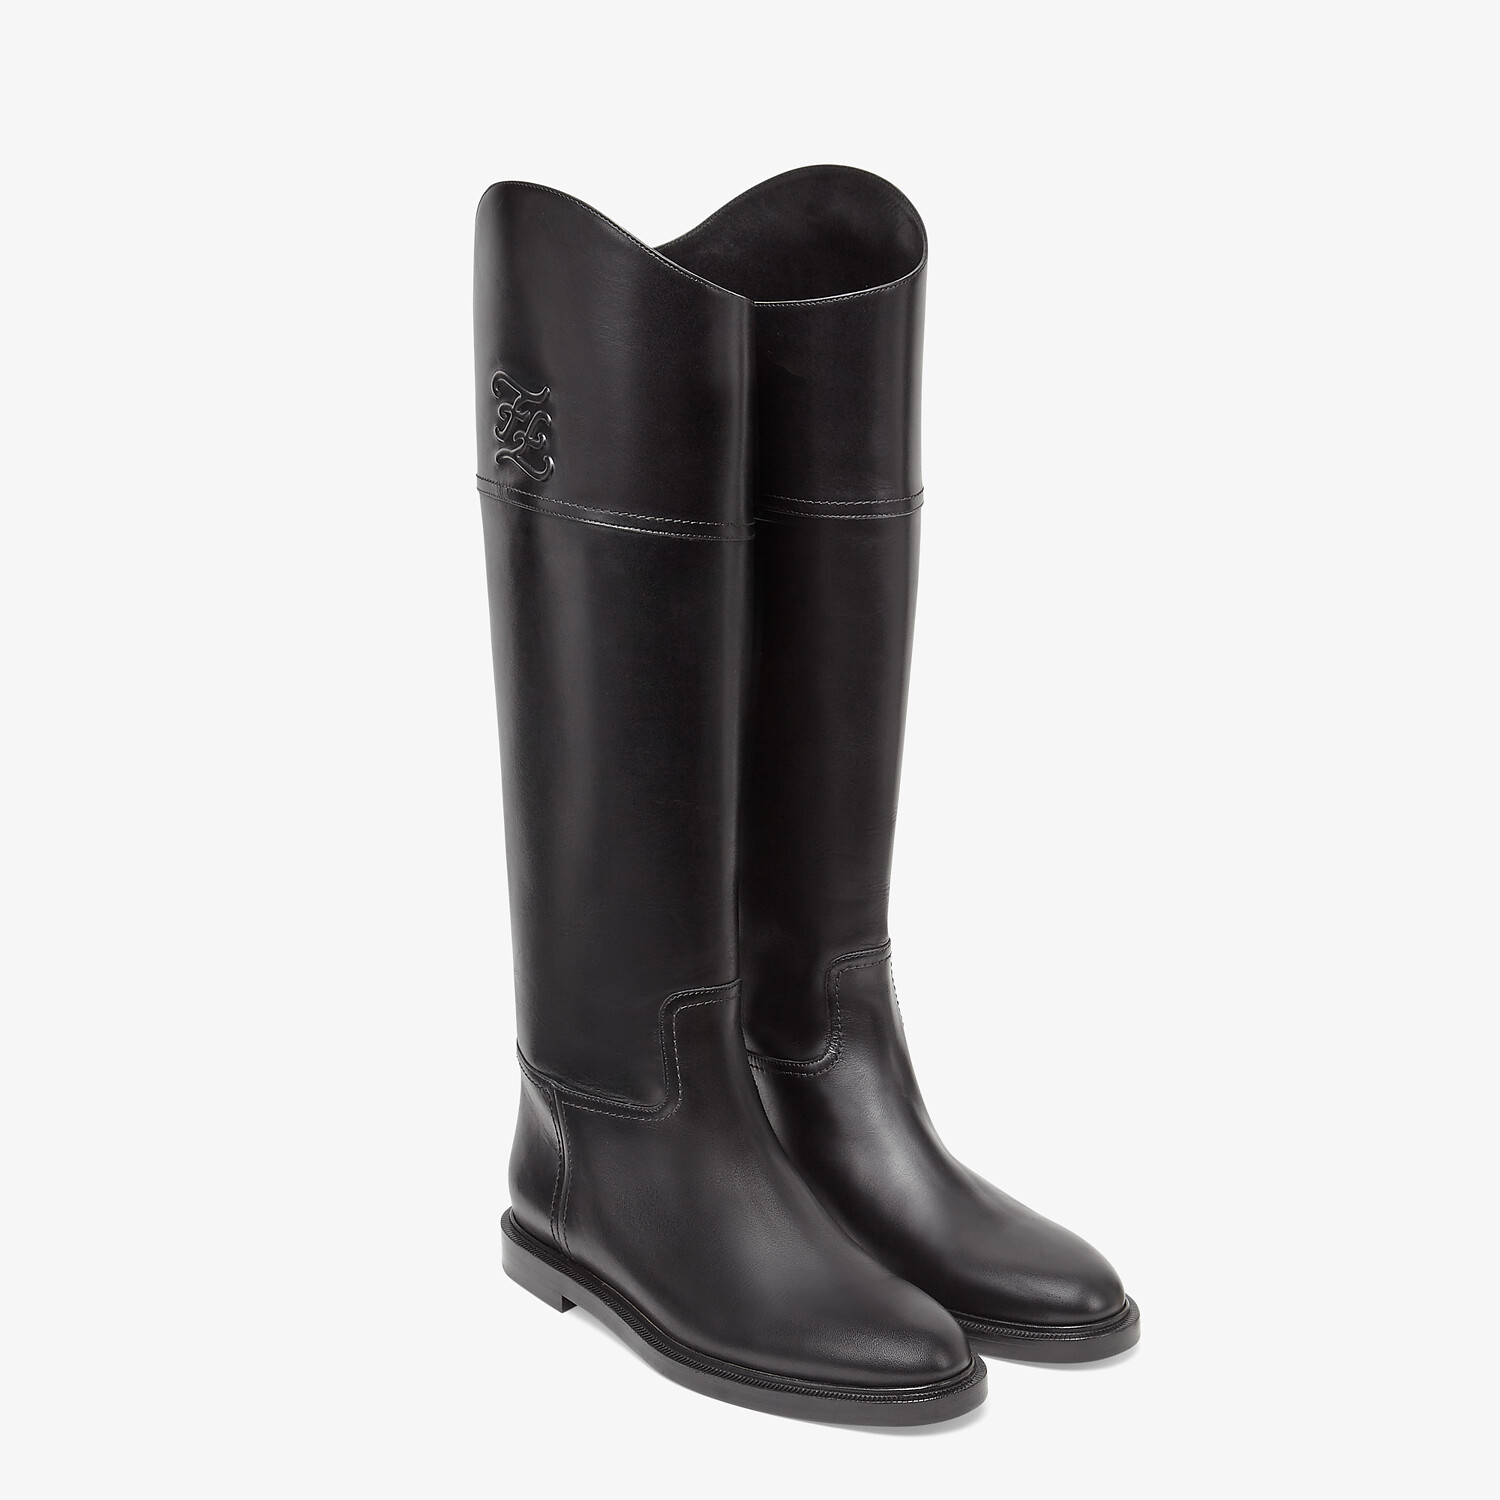 FENDI KARLIGRAPHY - Black leather boots - view 4 detail